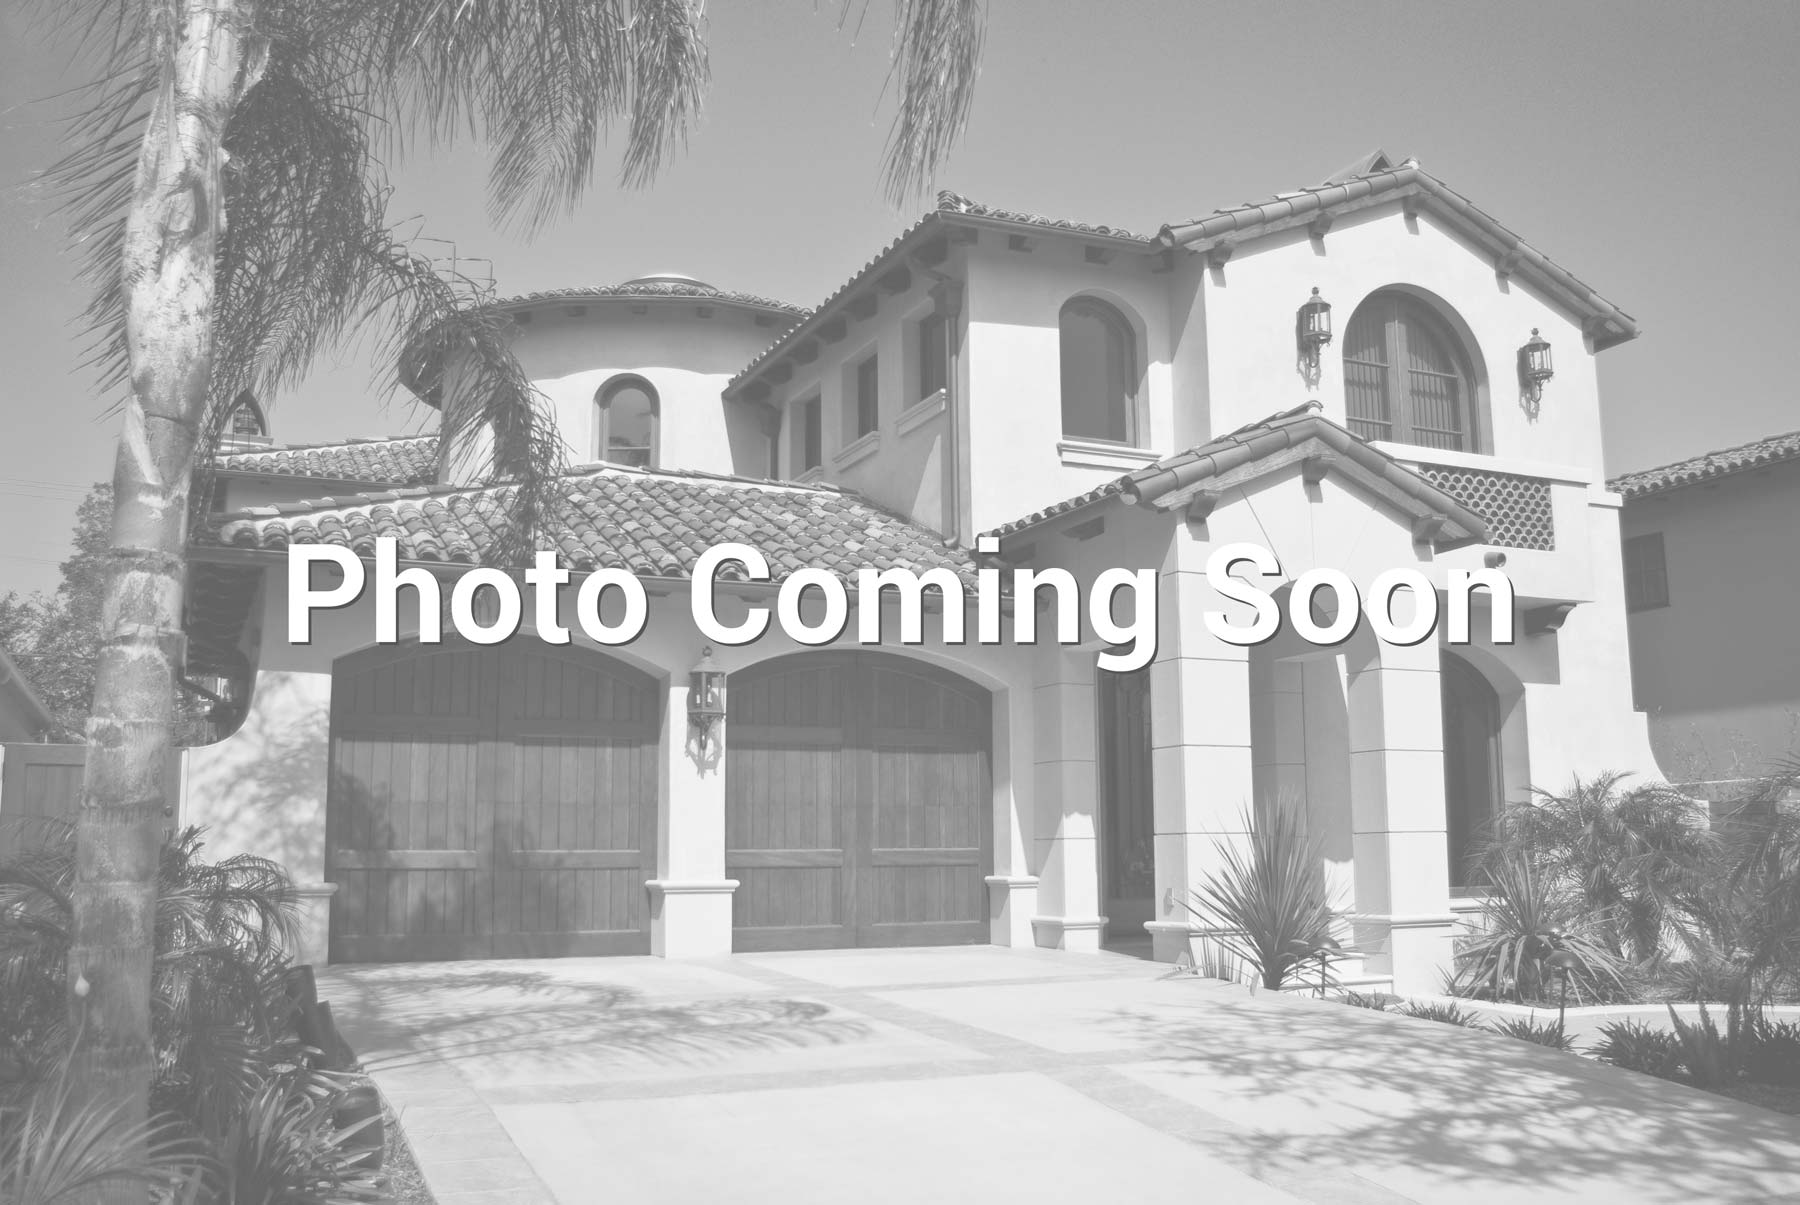 $550,000 - 4Br/3Ba - Home for Sale in Northwood Glen, Glendale